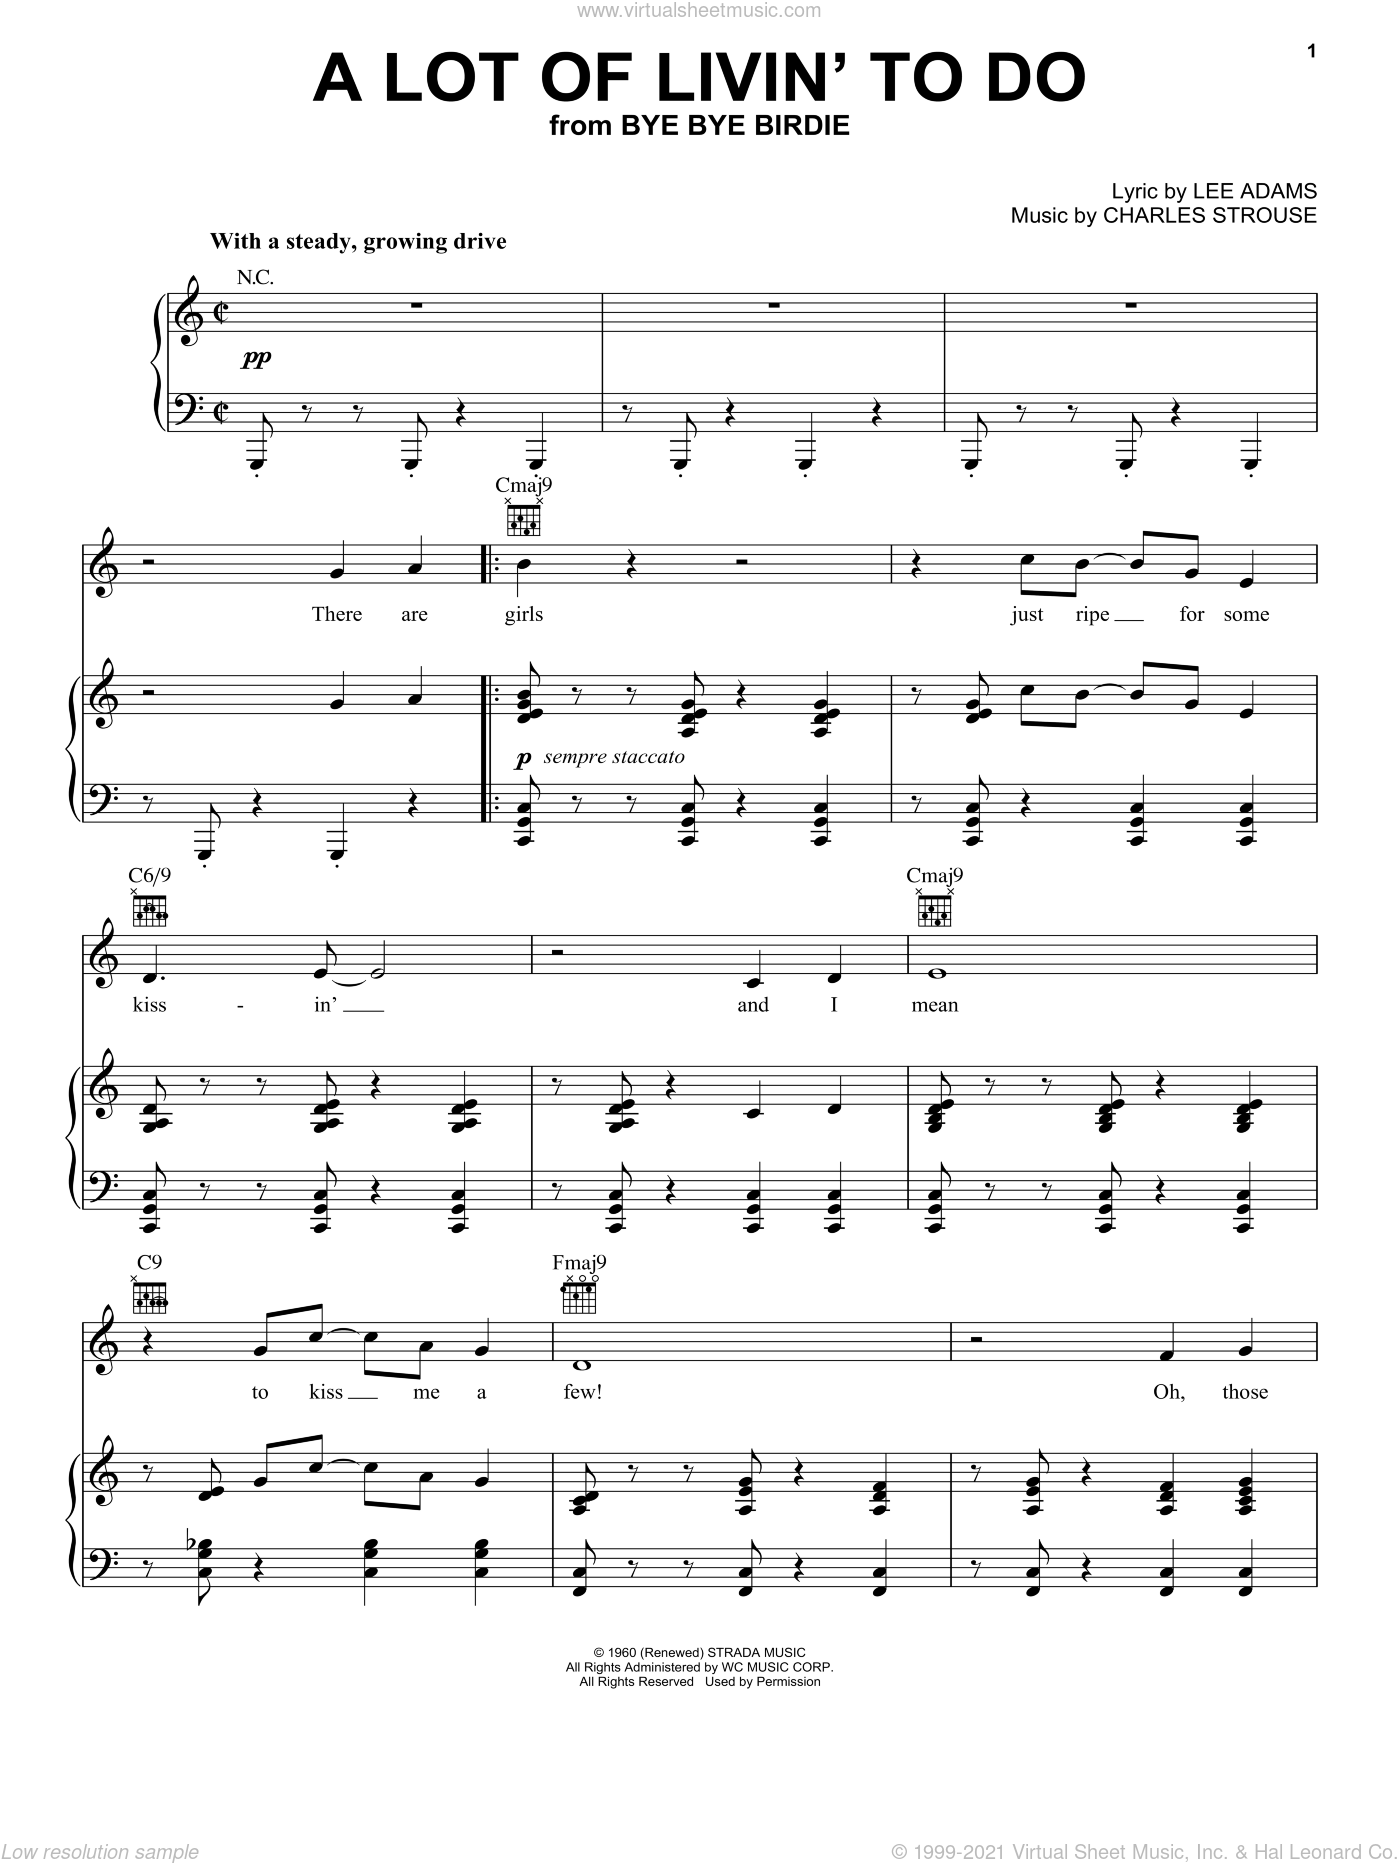 A Lot Of Livin' To Do sheet music for voice, piano or guitar by Charles Strouse, Bye Bye Birdie (Musical) and Lee Adams, intermediate skill level